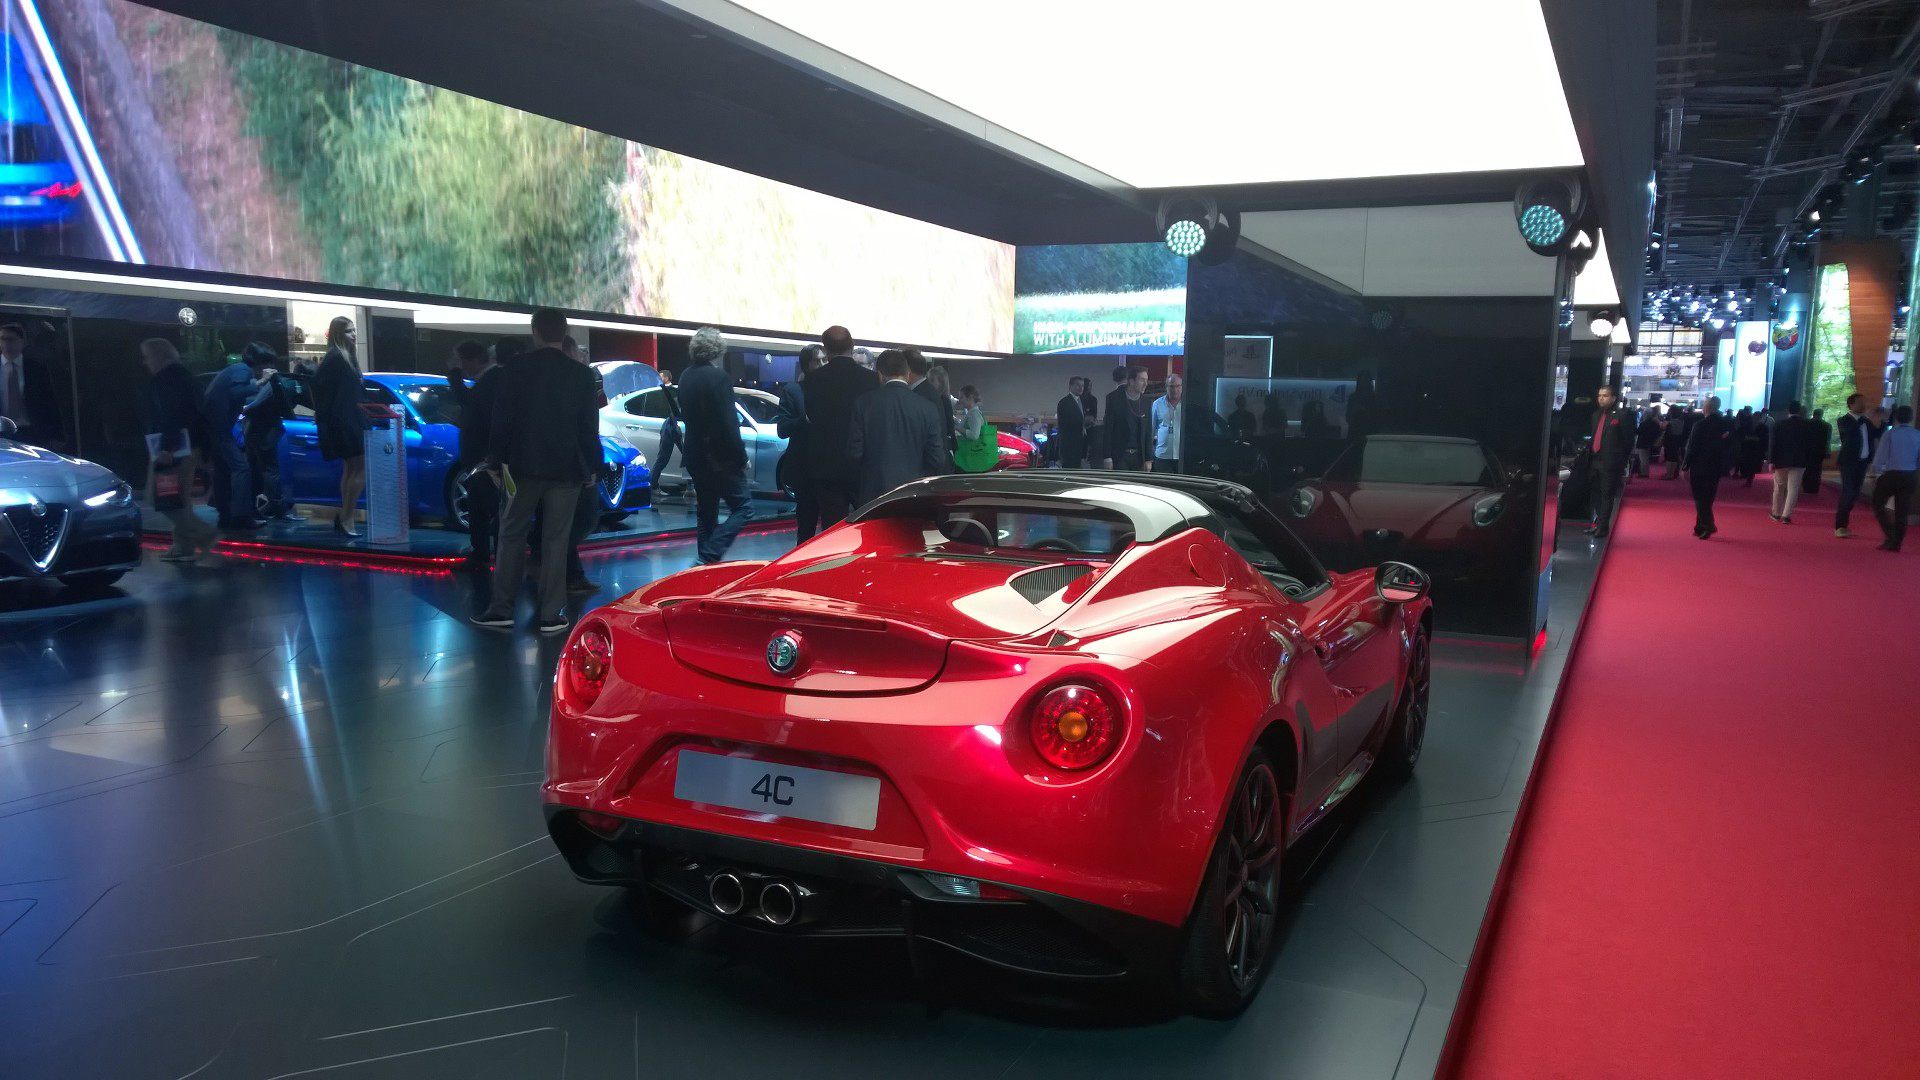 Alfa Romeo 4C - arrière / rear - 2016 - Mondial Auto - photo ELJ DM